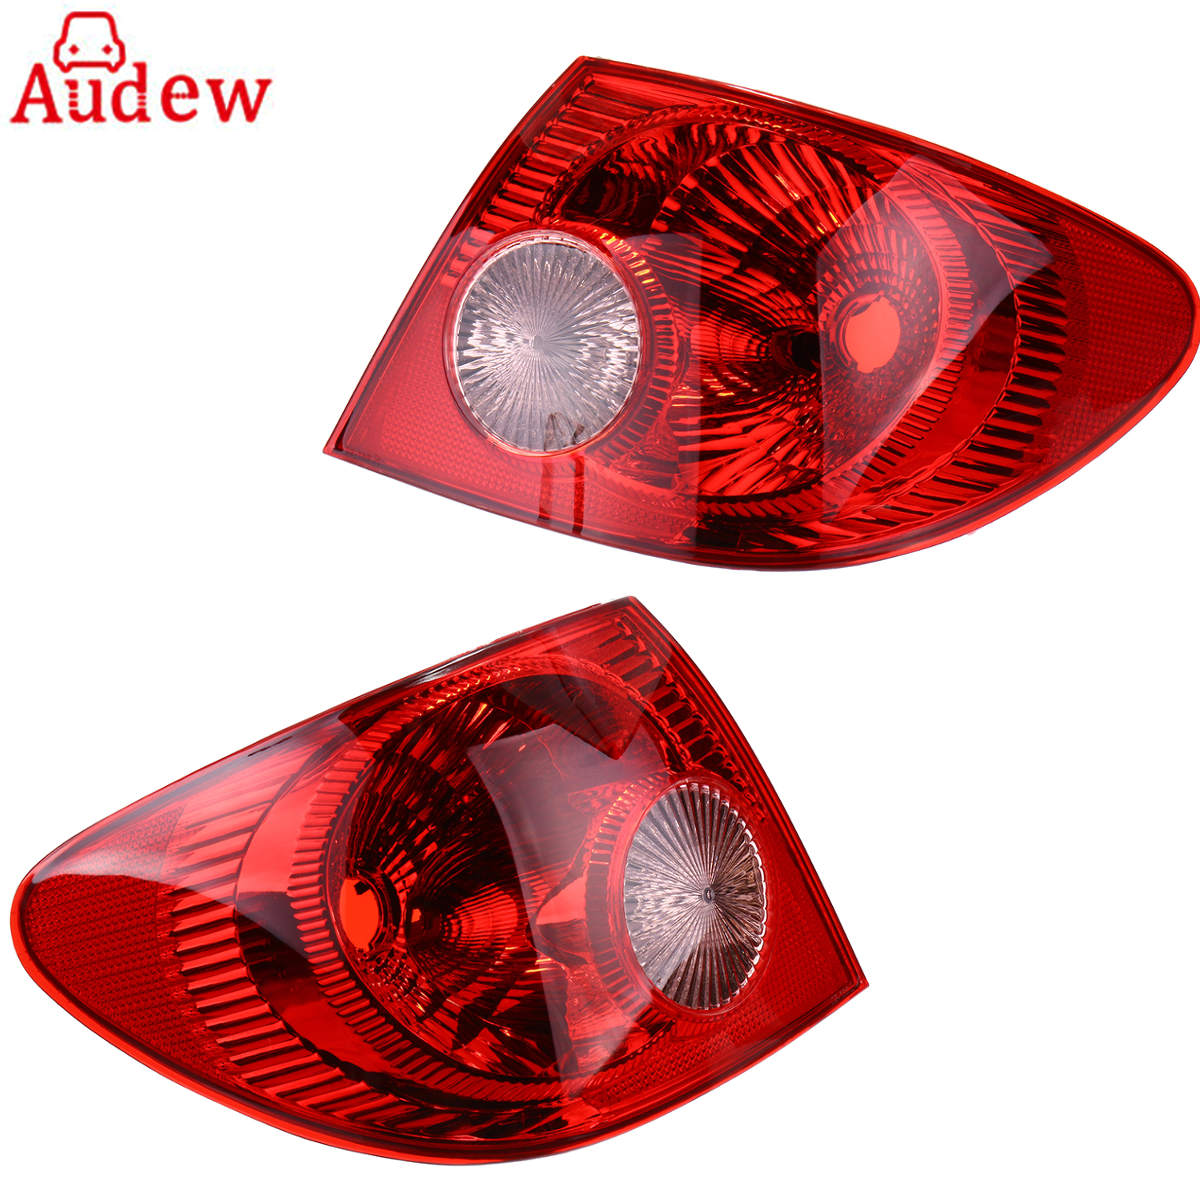 Car Rear Turn Light Red Left / Right Driver Side Tail Light Brake Lamp Tail Light Assembly For Toyota Corolla 2005-2008 free shipping for skoda octavia sedan a5 2005 2006 2007 2008 right side rear lamp tail light